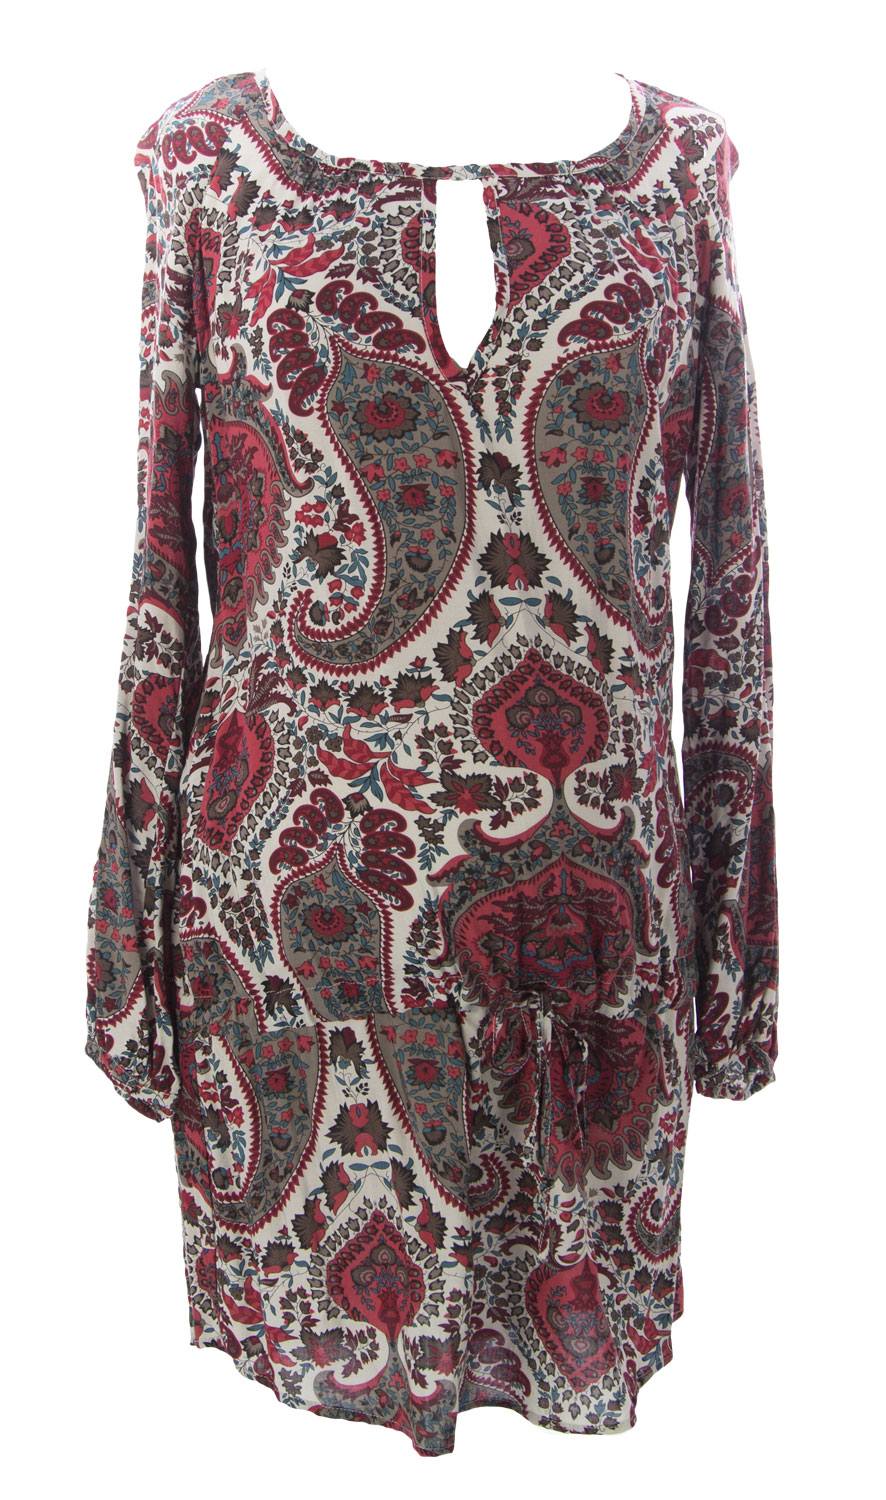 JULES & JIM Maternity Women's Paisley Tunic Top, Medium, Multi-Color